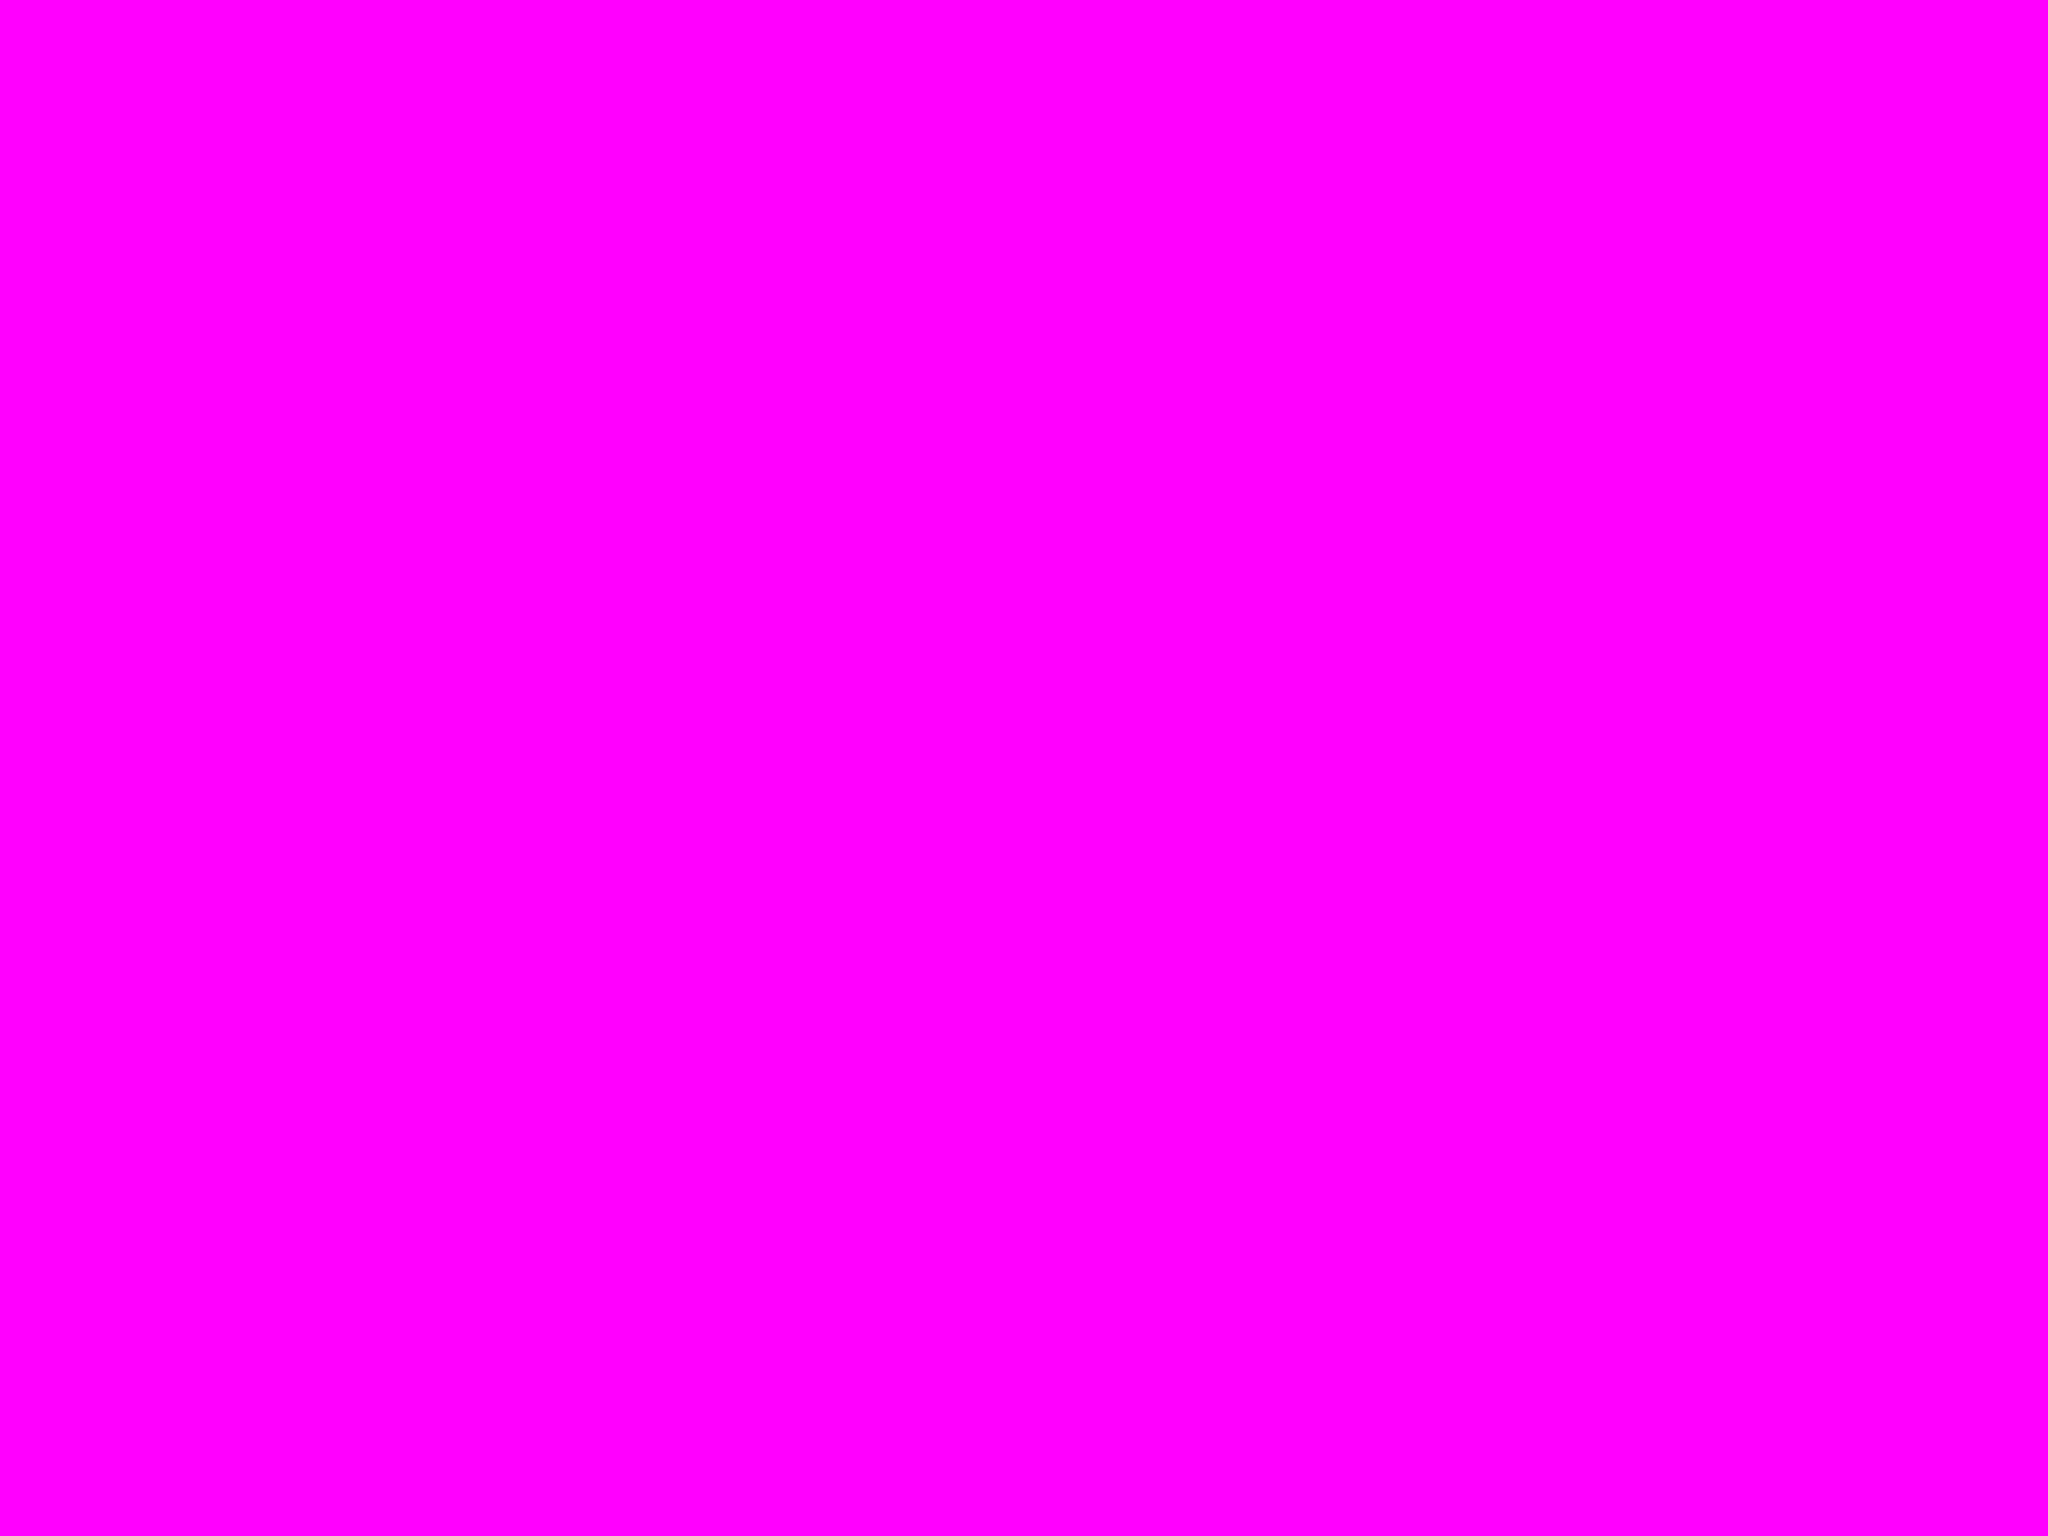 2048x1536 Fuchsia Solid Color Background